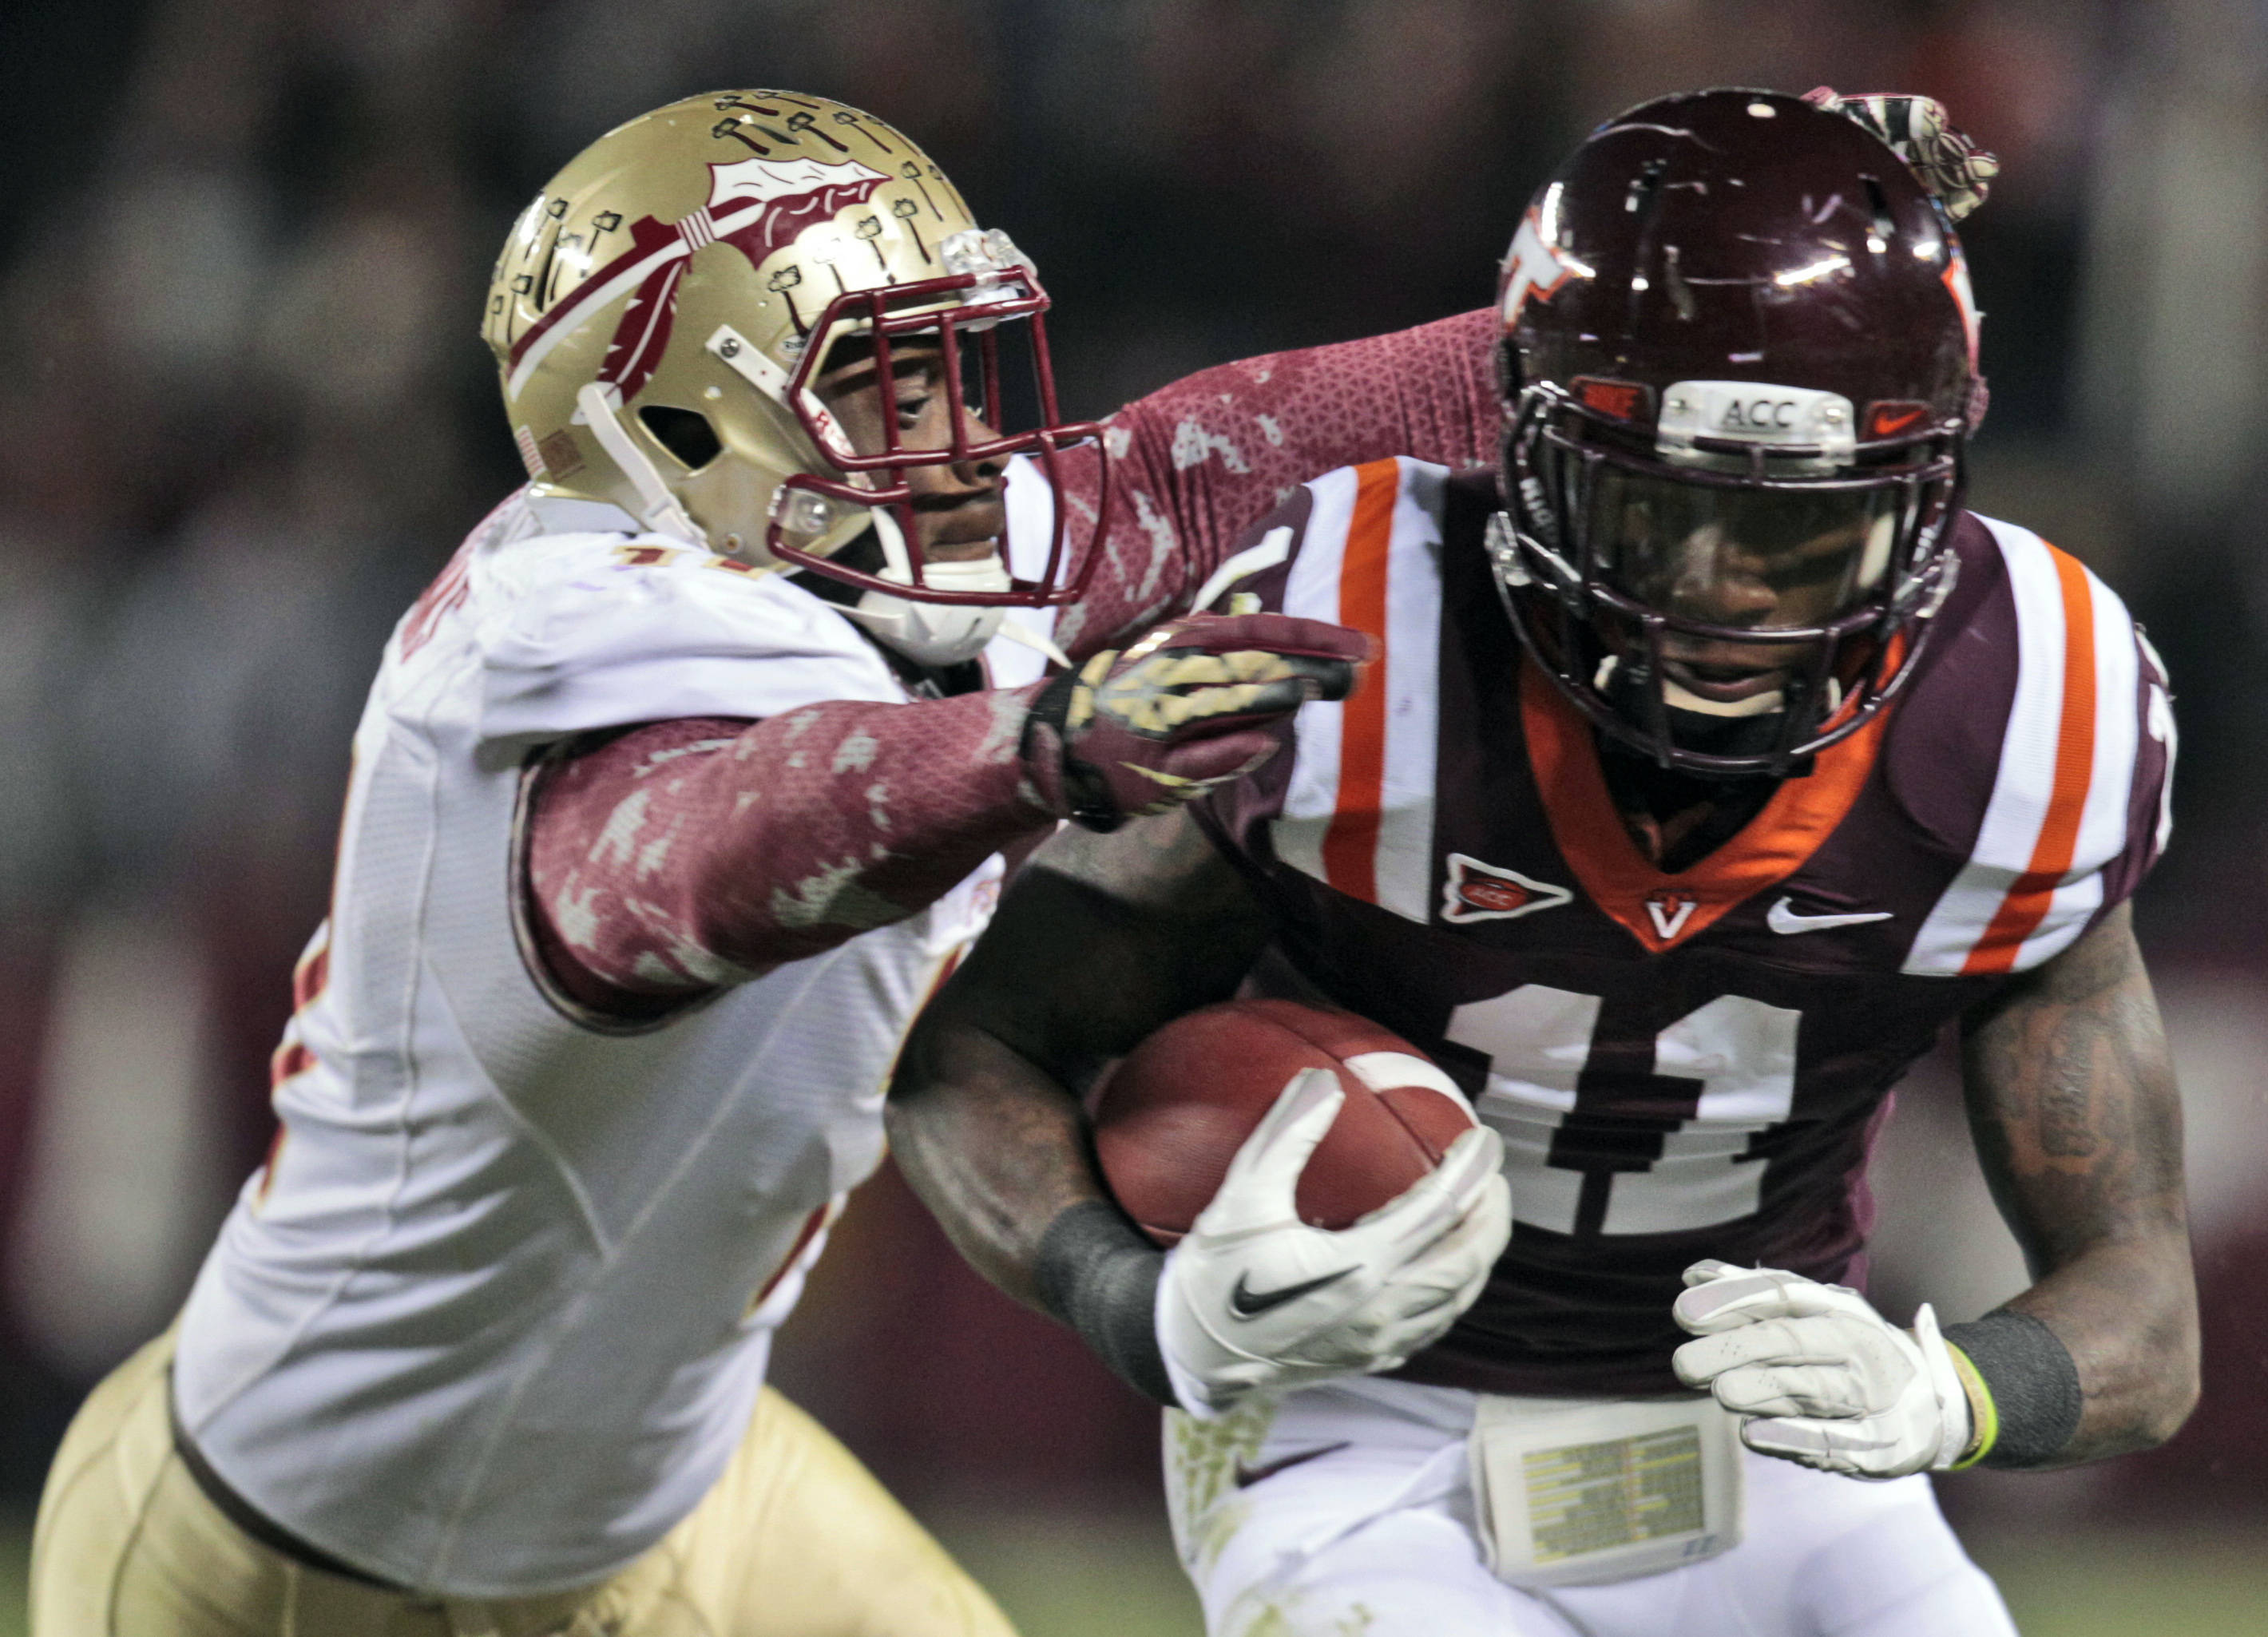 Florida State linebacker Vince Williams (11) closes in on Virginia Tech wide receiver Dyrell Roberts (11). (AP Photo/Steve Helber)